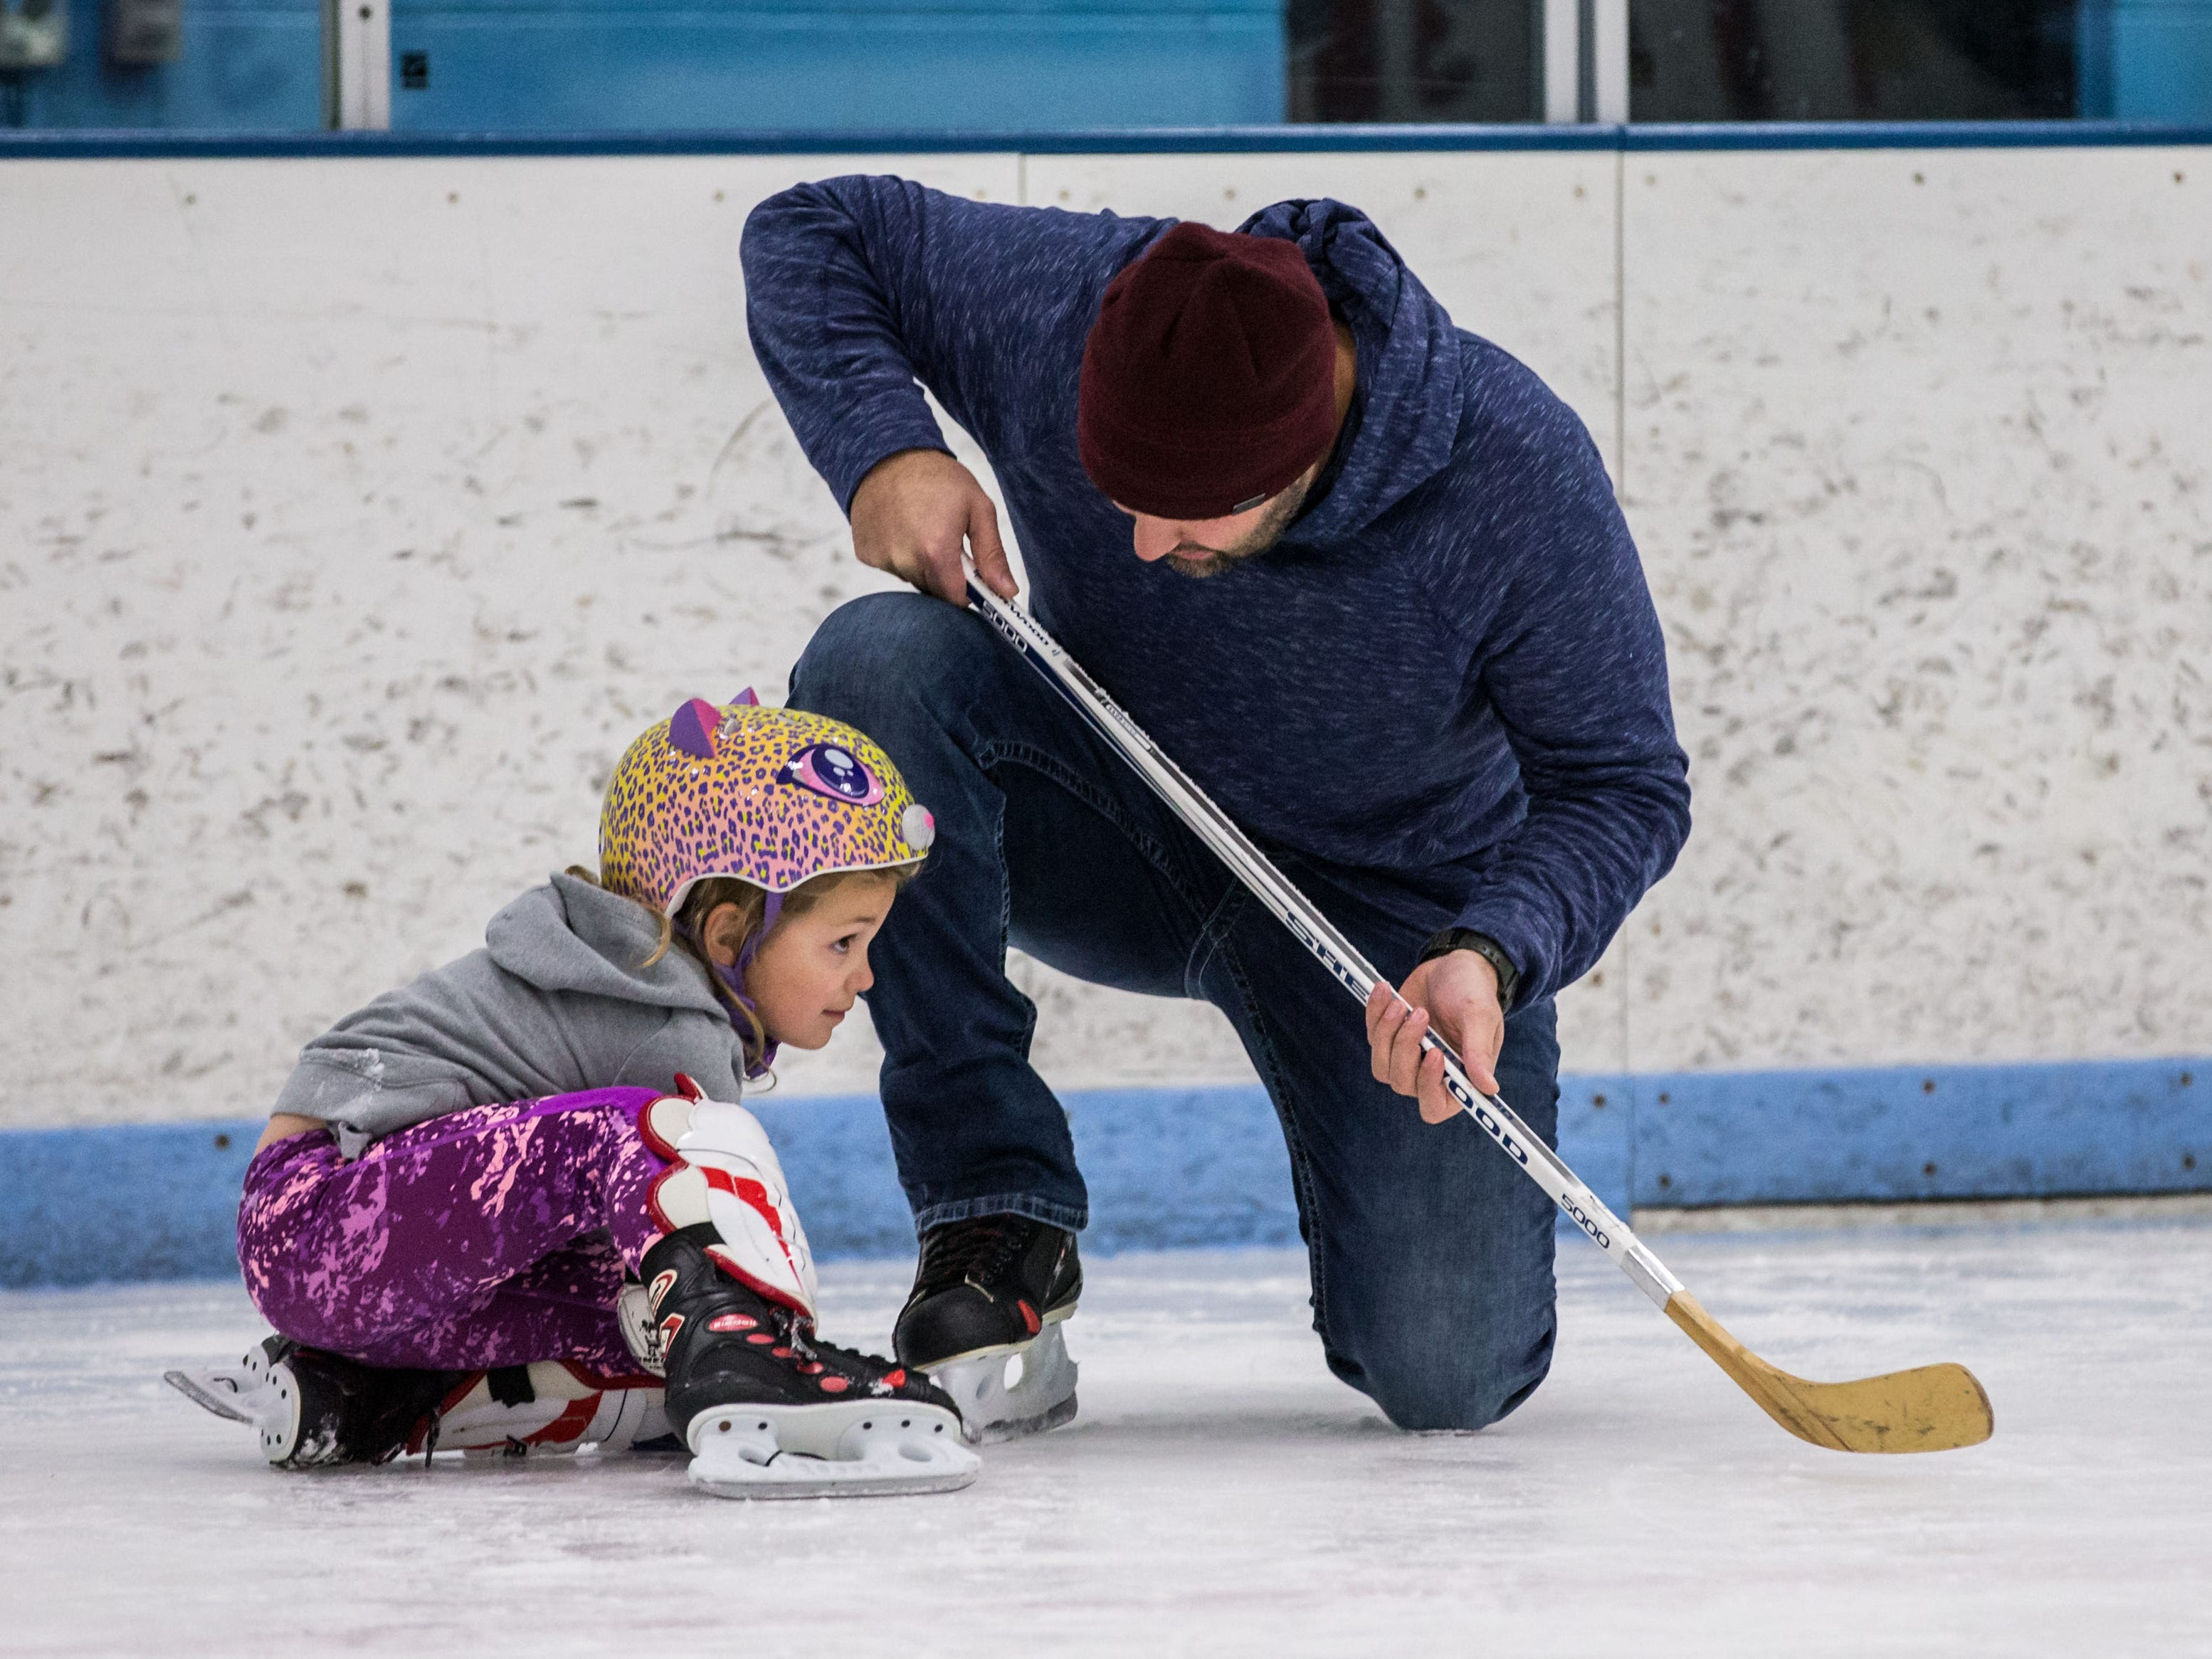 Jackson Davis of Pewaukee gives words of encouragement as his 4-year-old daughter Charlie finds her footing during the Girls Try Hockey for Free event at Eble Park Ice Arena in Brookfield on Sunday, Sept. 30, 2018. The Waukesha County Wolves all girls hockey organization hosted the event.